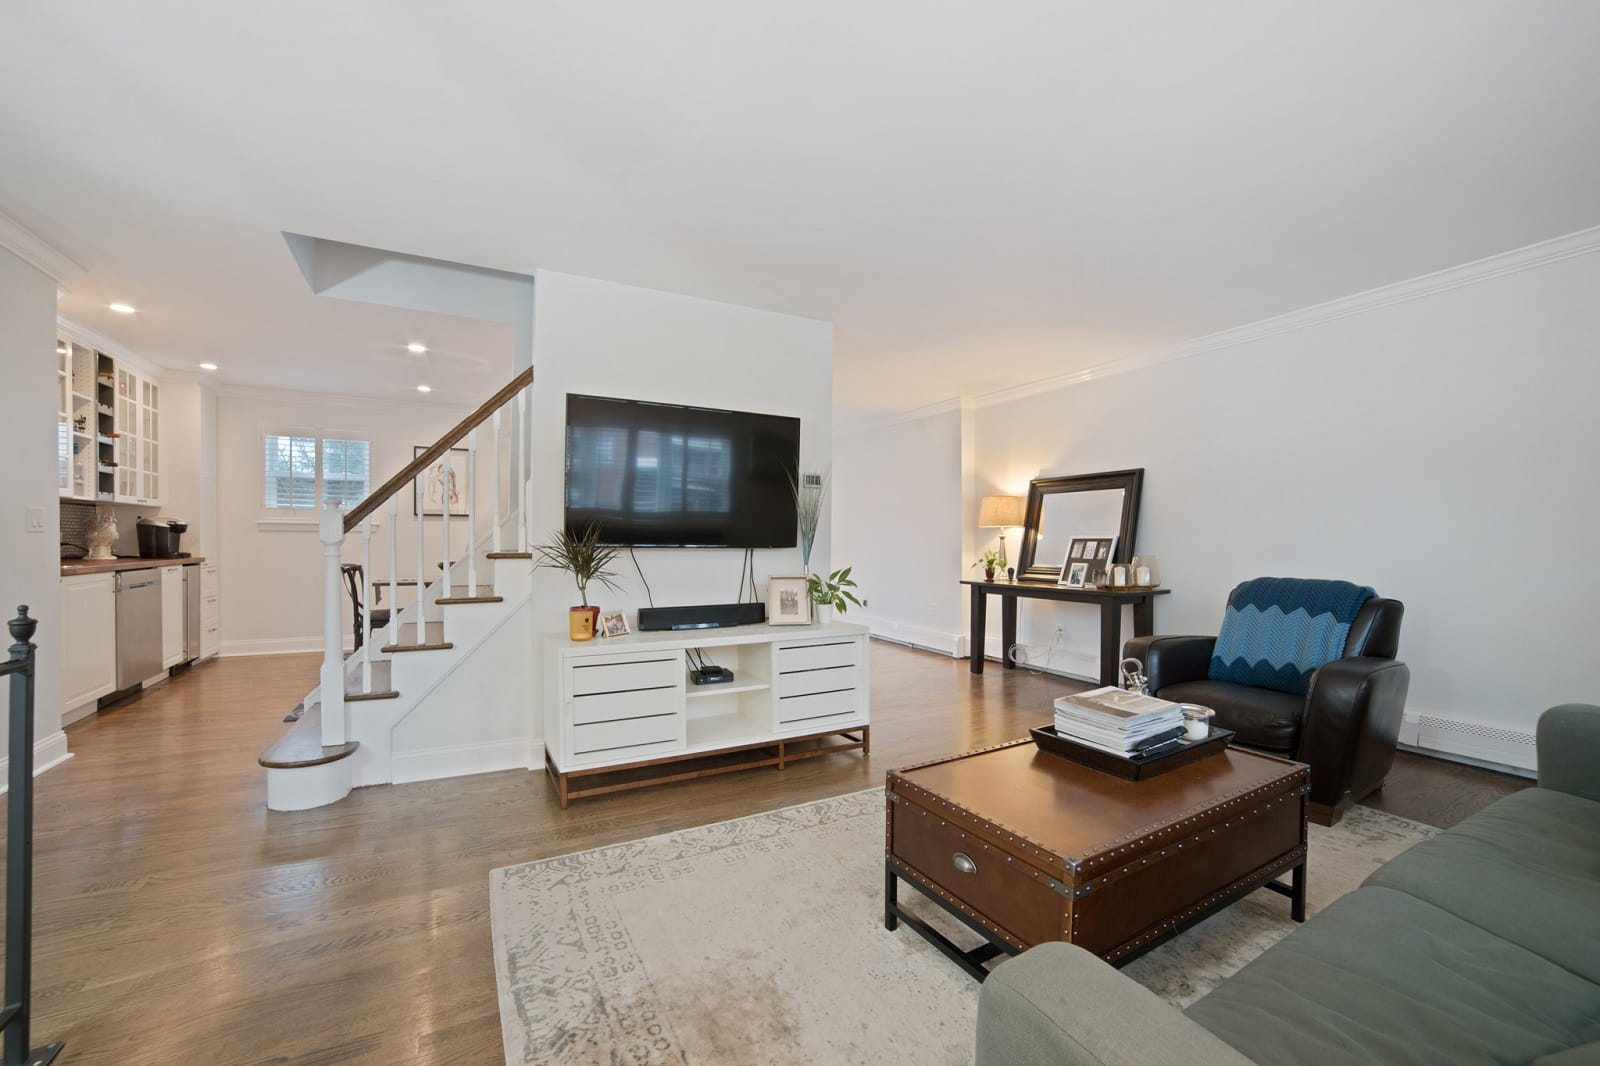 Real Estate Photography in Bronx - New York - USA - Living Area View